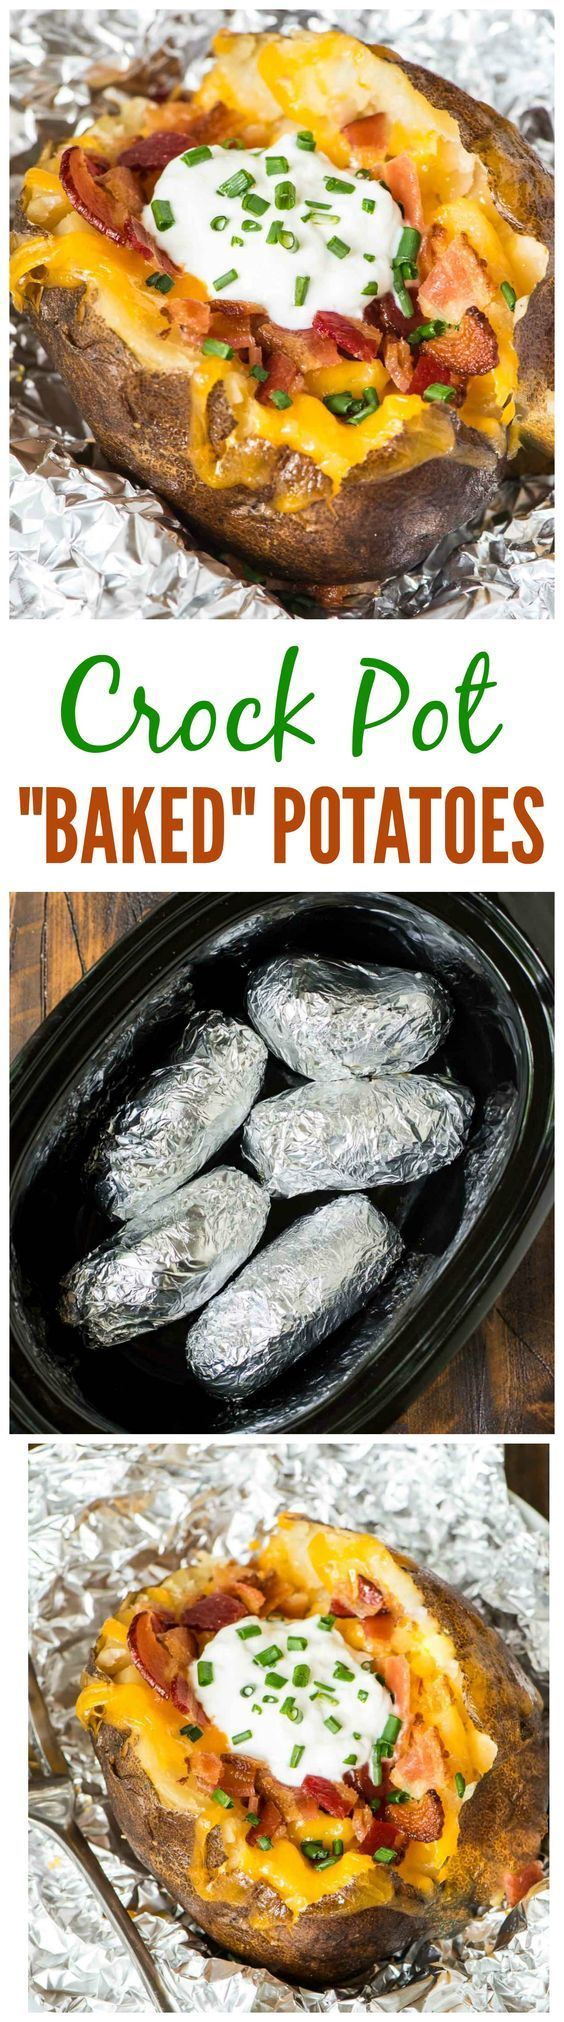 awesome Crock Pot Baked Potatoesby http://dezdemon99-recipesations.gdn